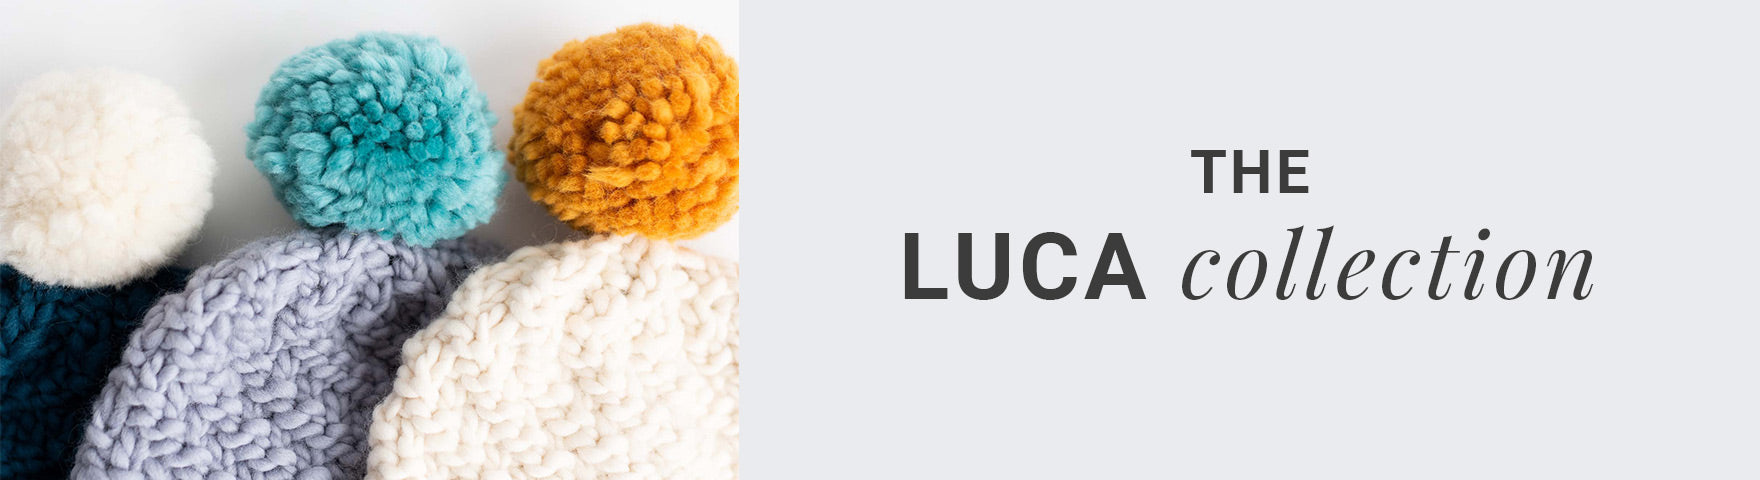 The Luca Collection   Stitch & Story